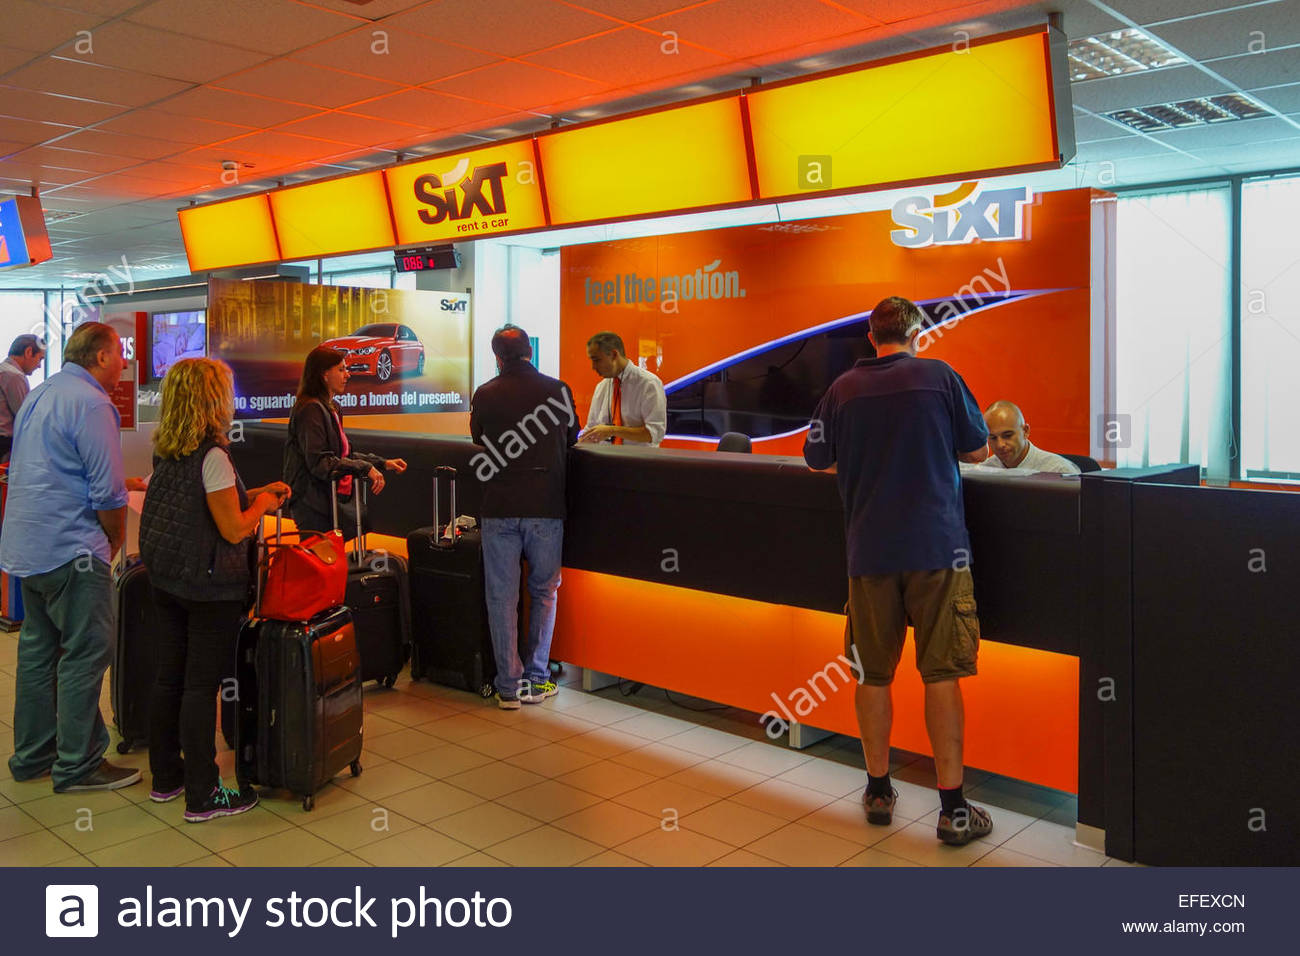 Rent a car los angeles airport sixt